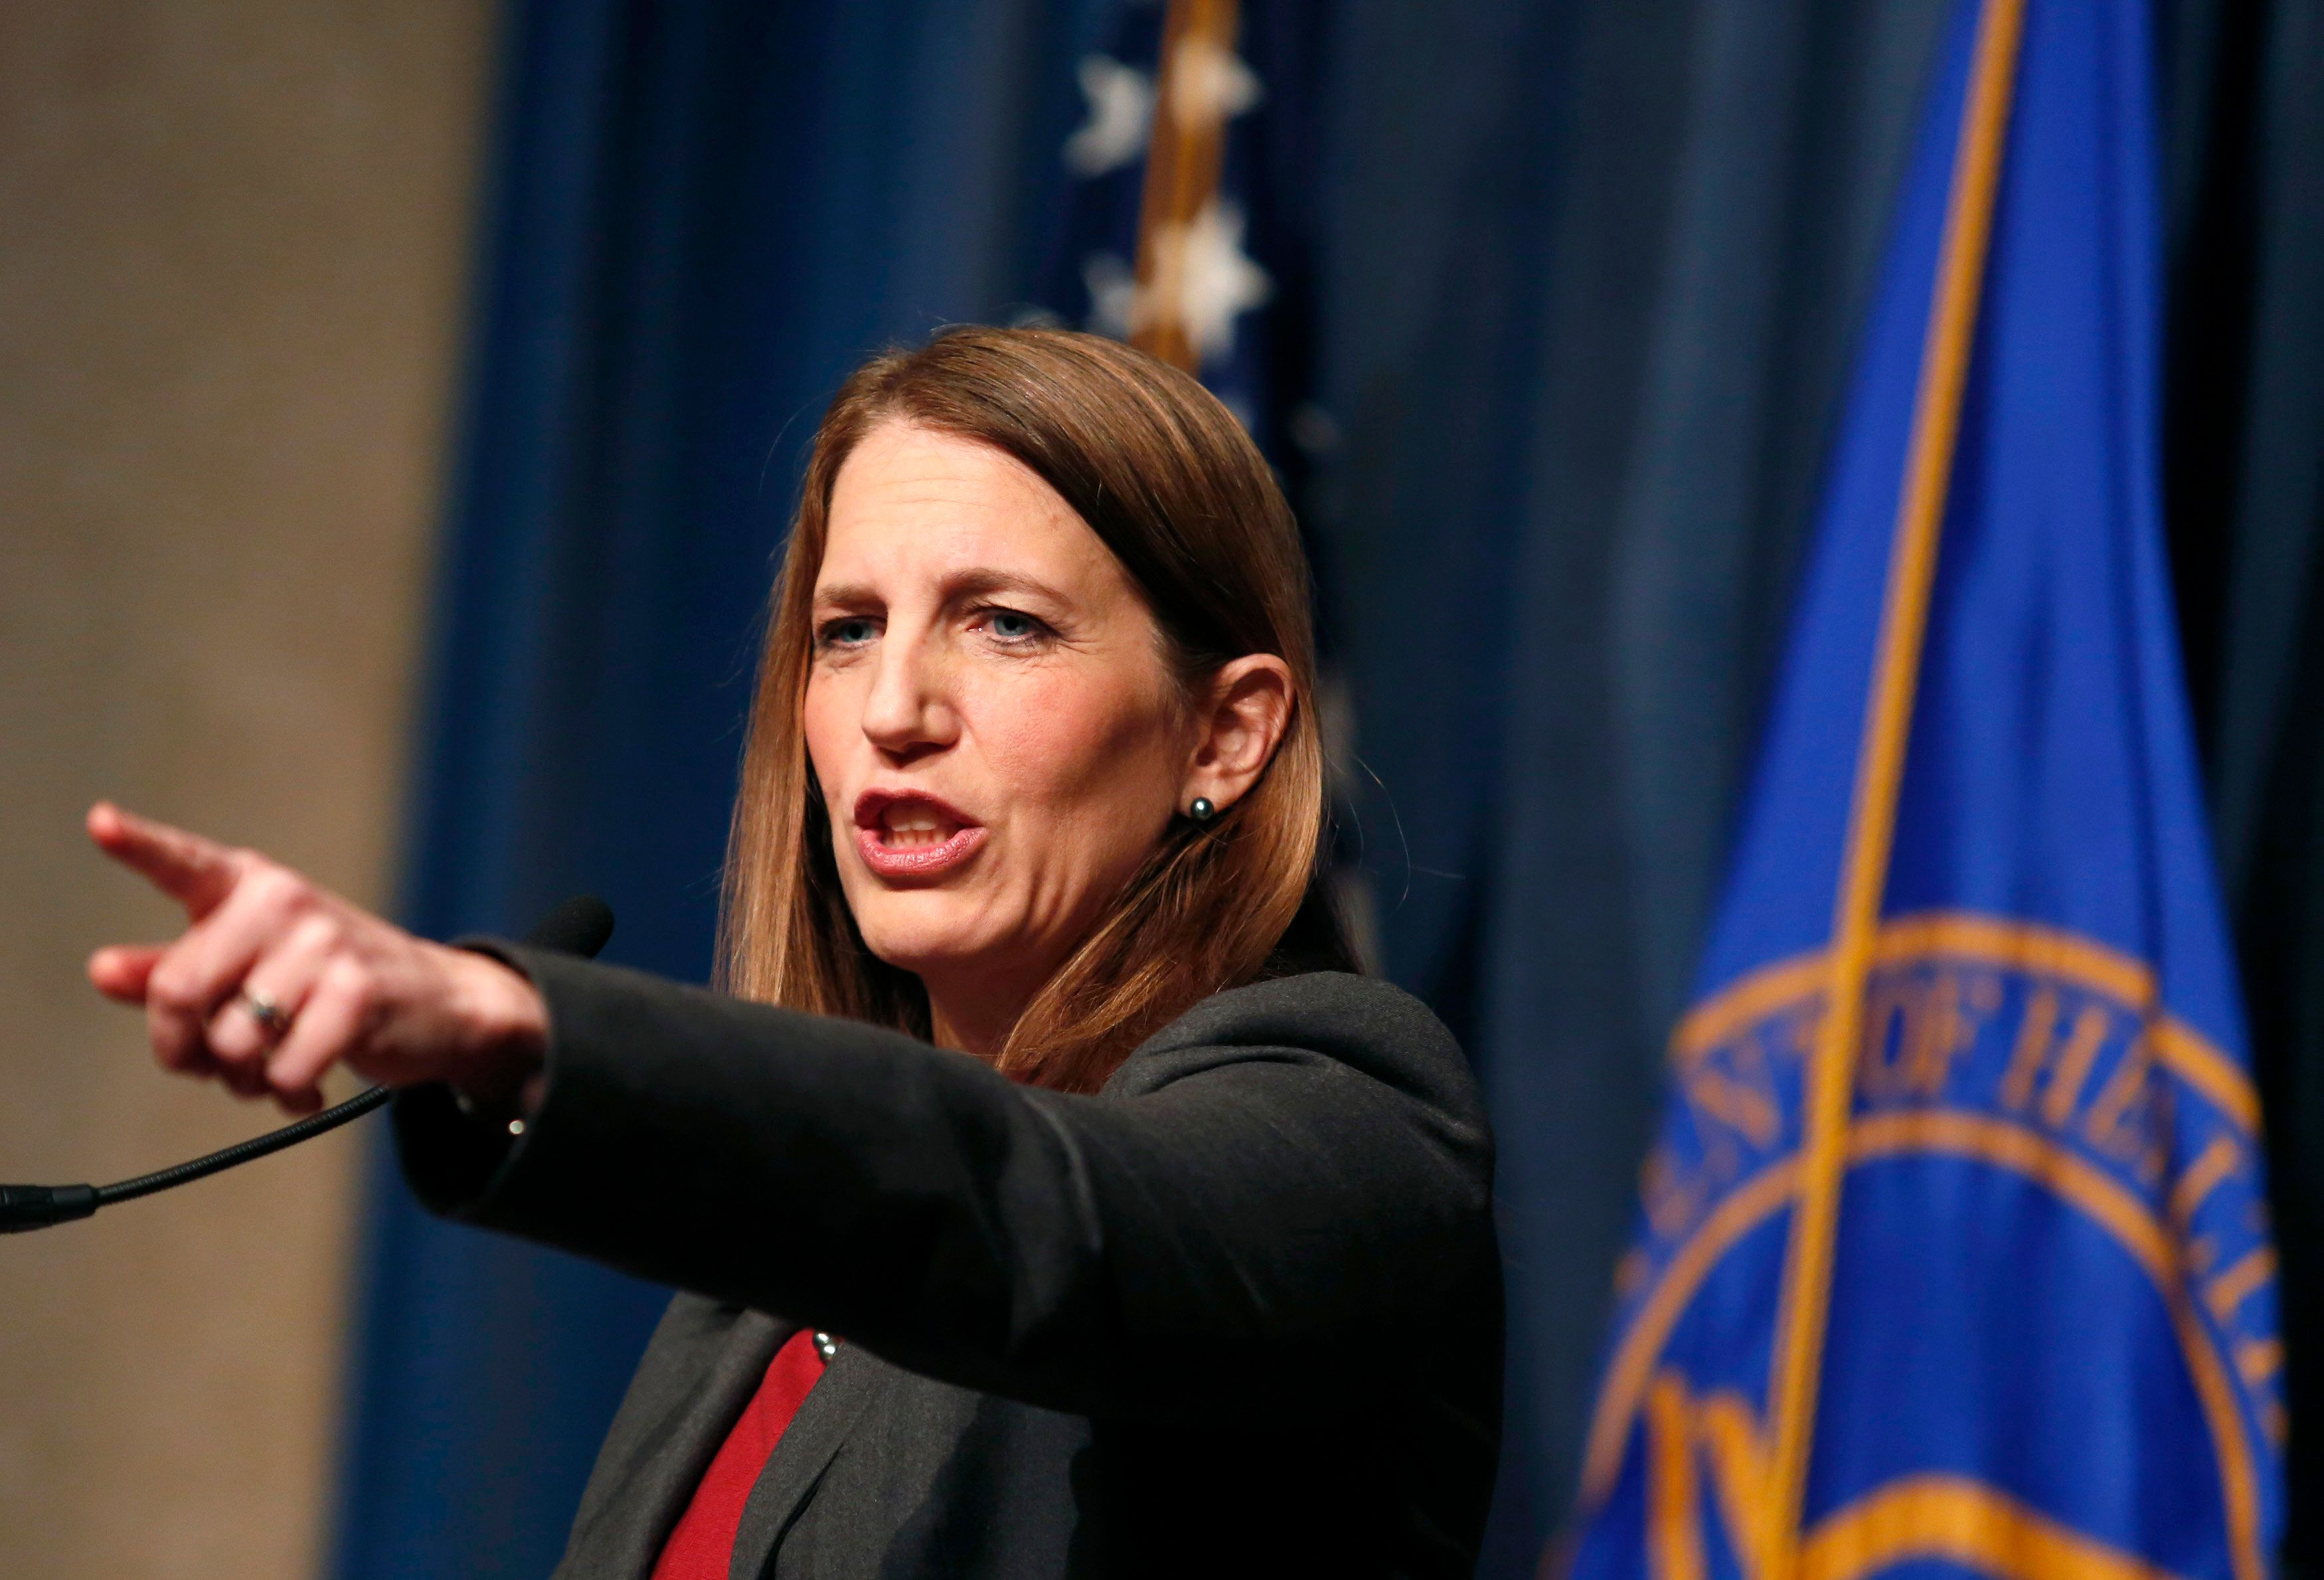 Secretary of Health and Human Services Sylvia Mathews Burwell gestures during a press conference on Open Enrollment in Washington February 18, 2015. REUTERS/Yuri Gripas (UNITED STATES - Tags: POLITICS HEALTH)